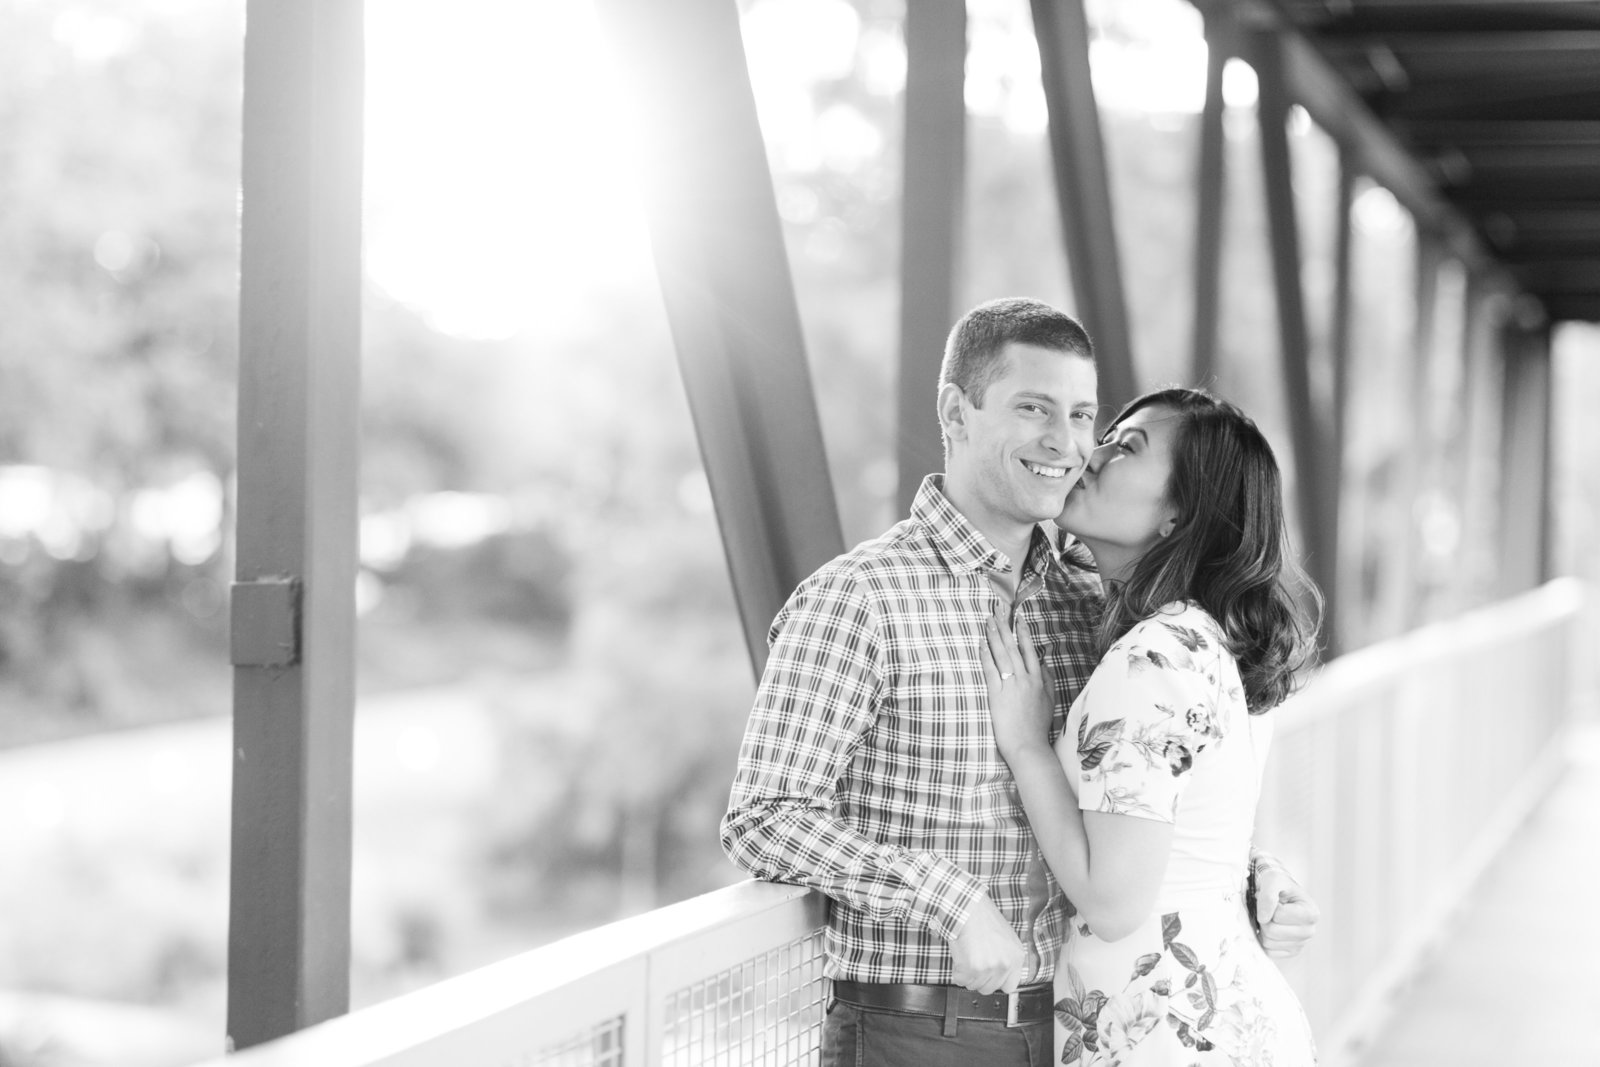 the-pearl-brewery-engagement-session-fall-october-san-antonio-texas-photo-174